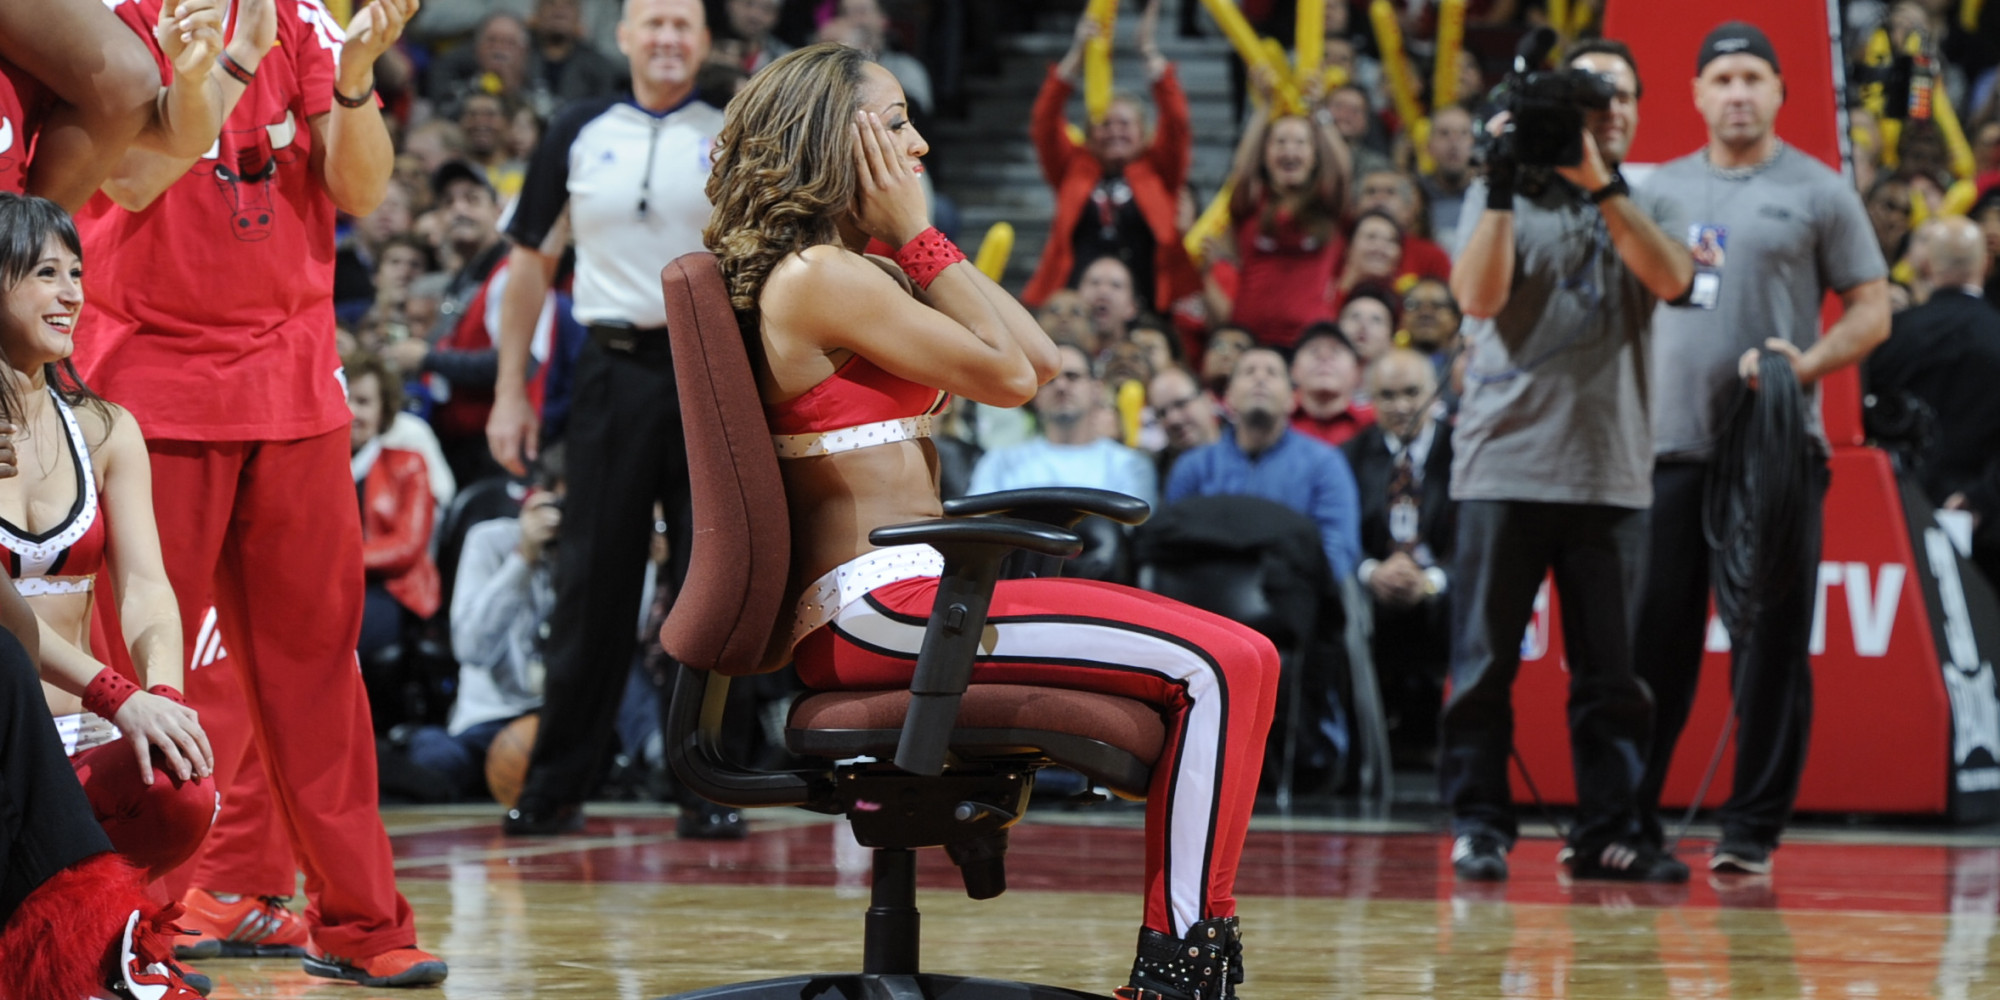 LOOK: Bulls Cheerleader Gets The Surprise Of A Lifetime During Heat Game